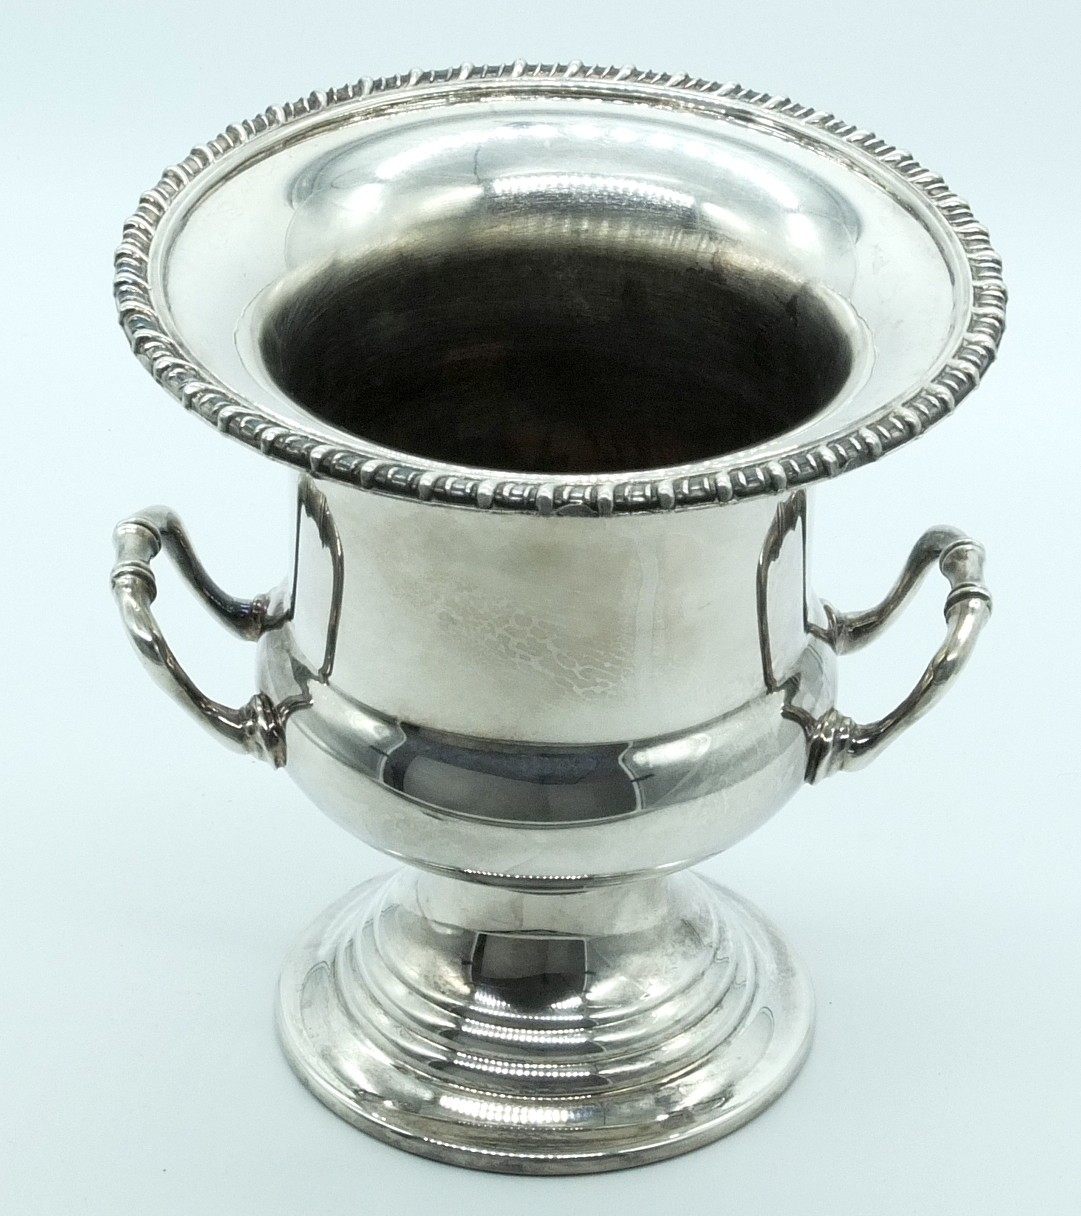 'Viners Silver Plate Champagne Bucket'